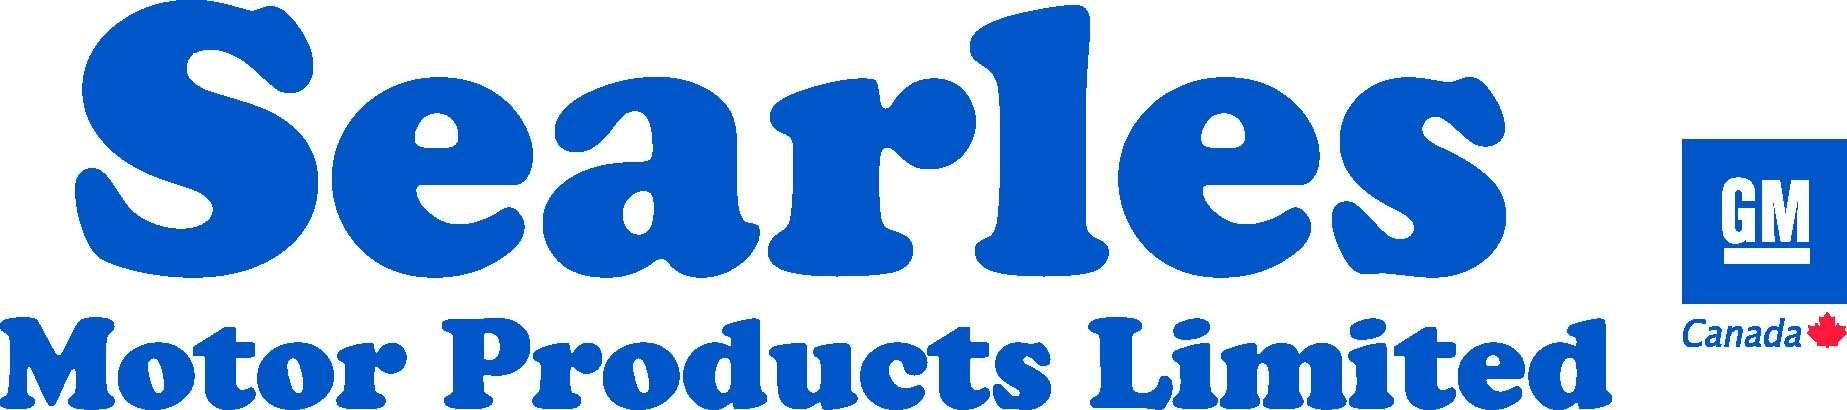 Searles Motor Products